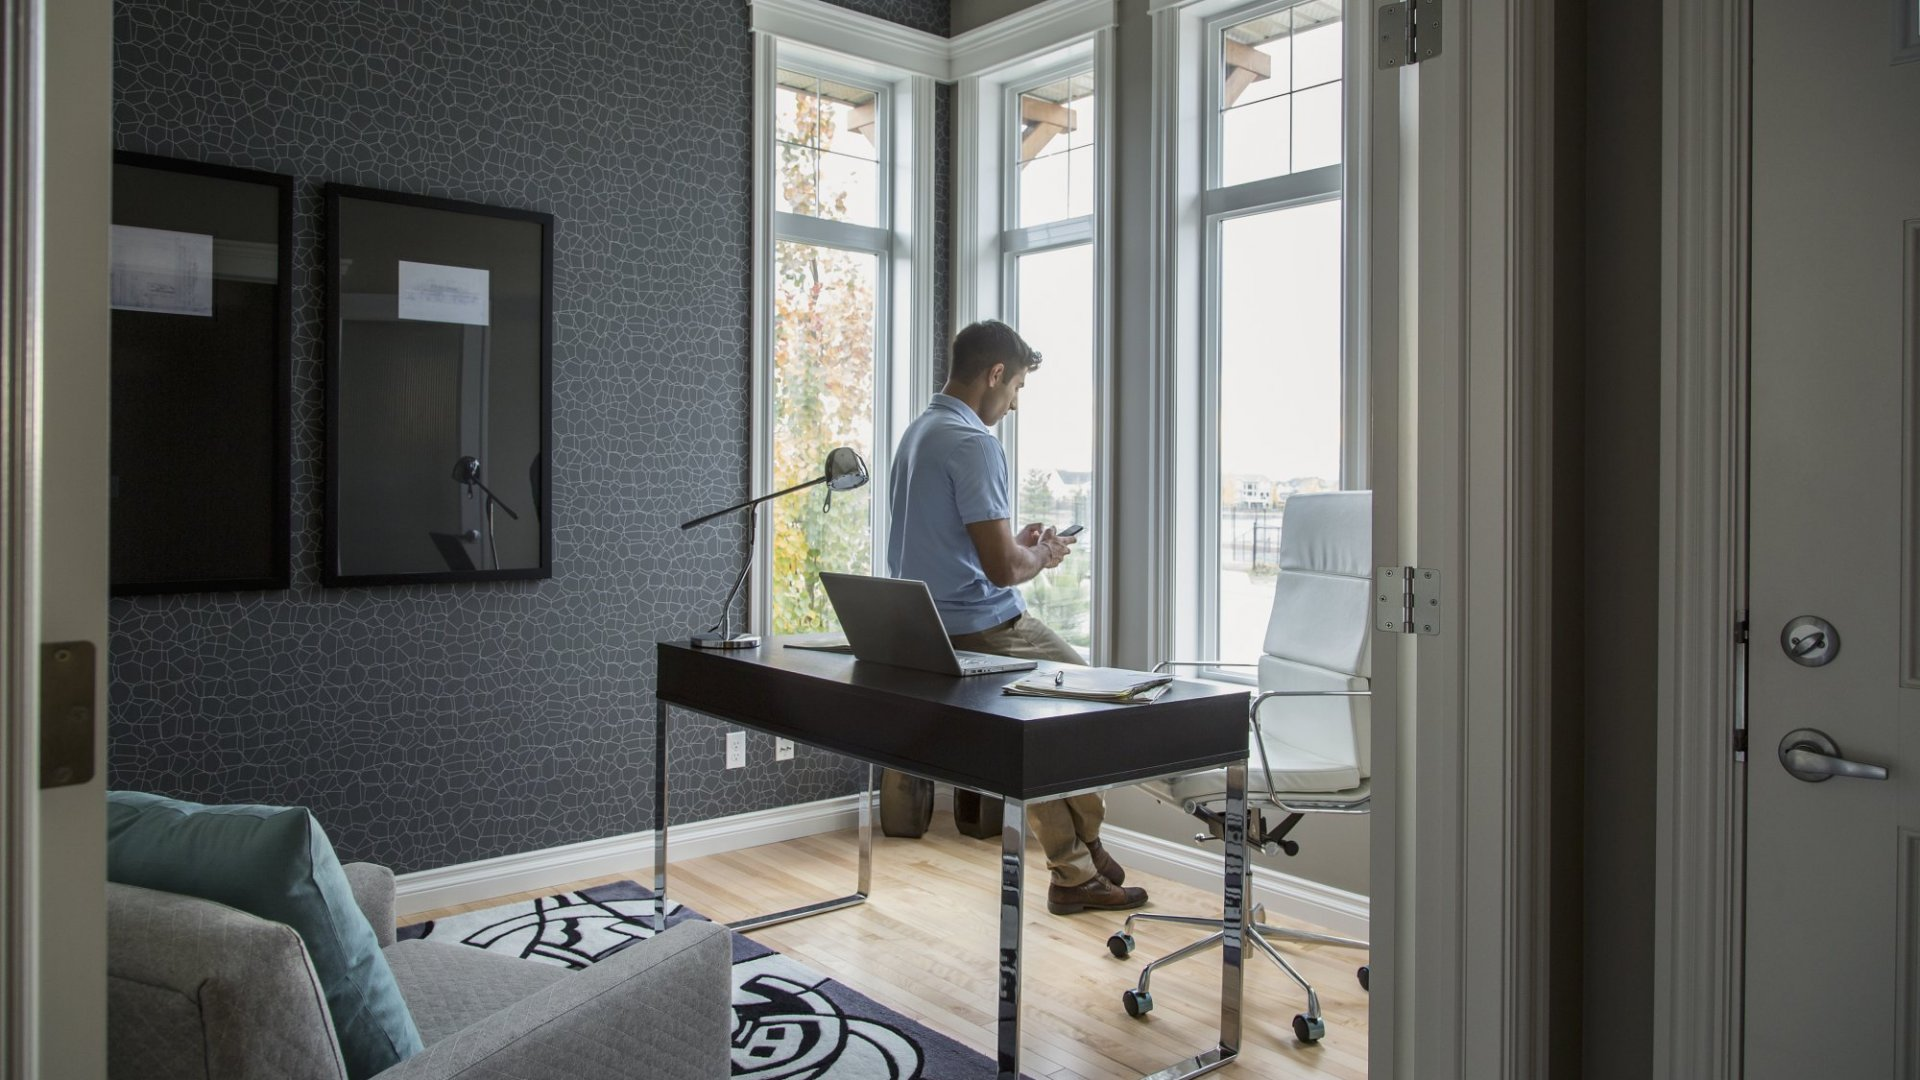 10 Things I've Learned in 10 Years of Working From Home